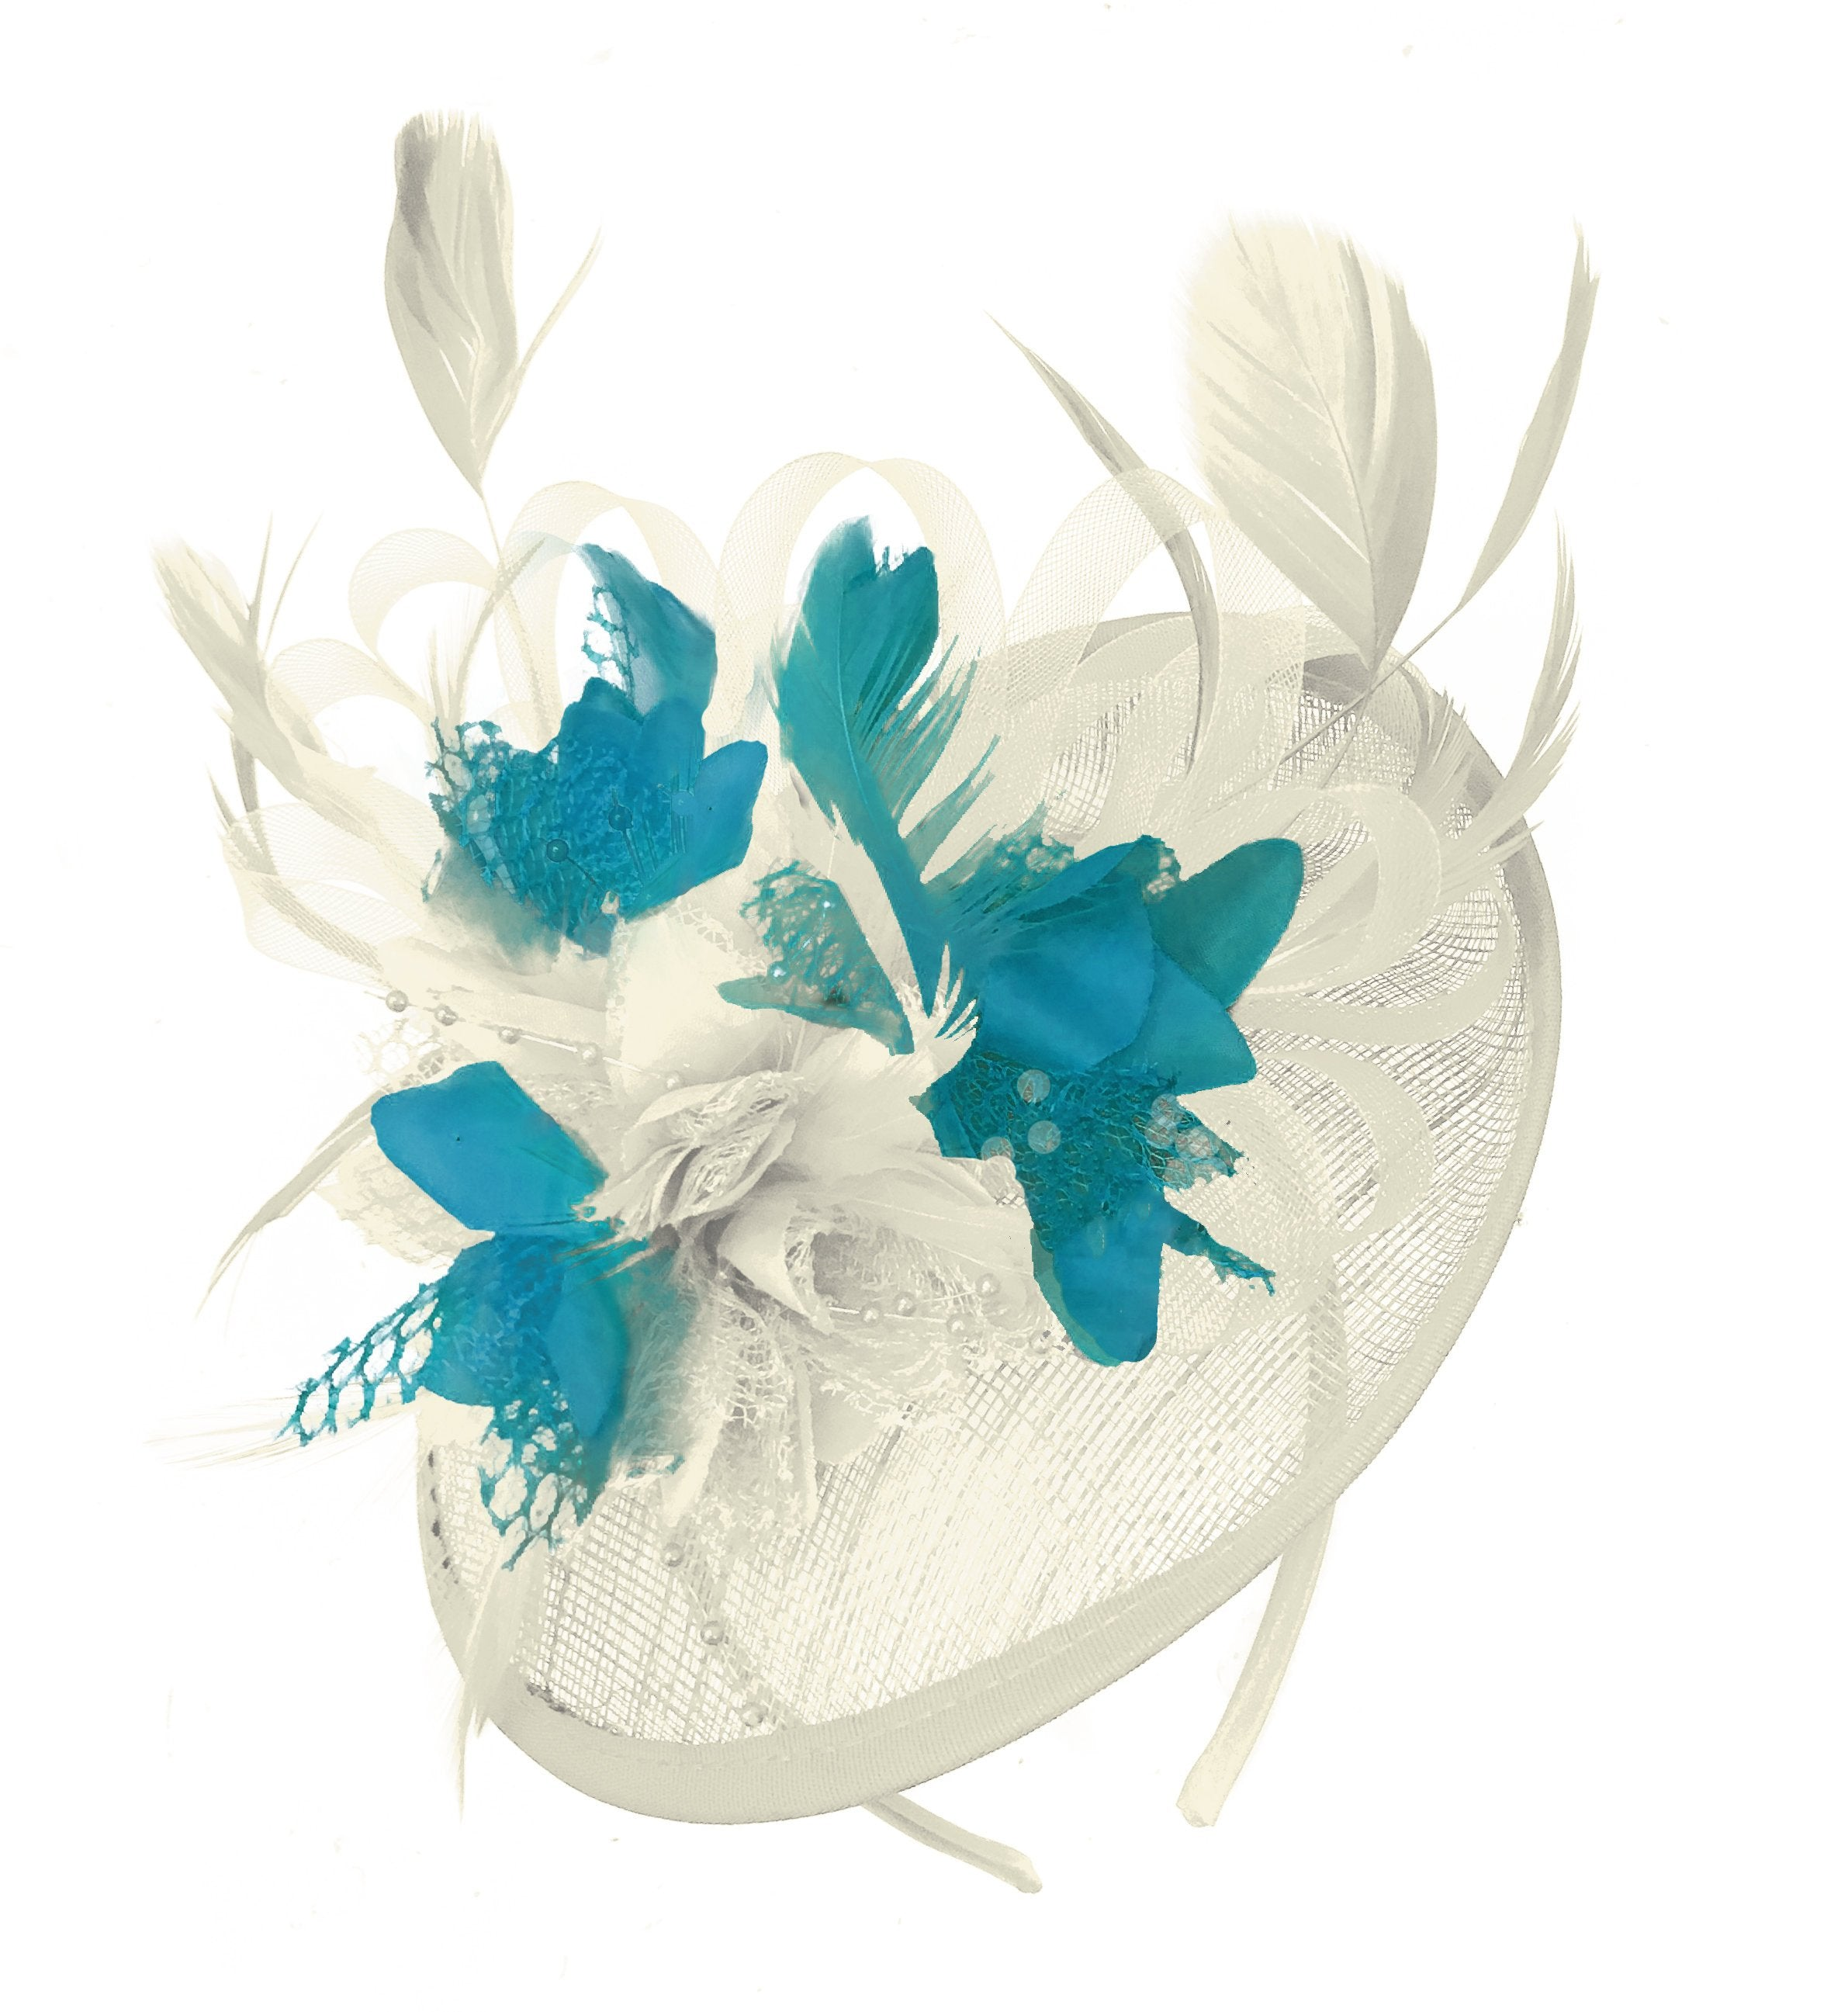 Caprilite Cream and Teal Sinamay Disc Saucer Fascinator Hat for Women Weddings Headband